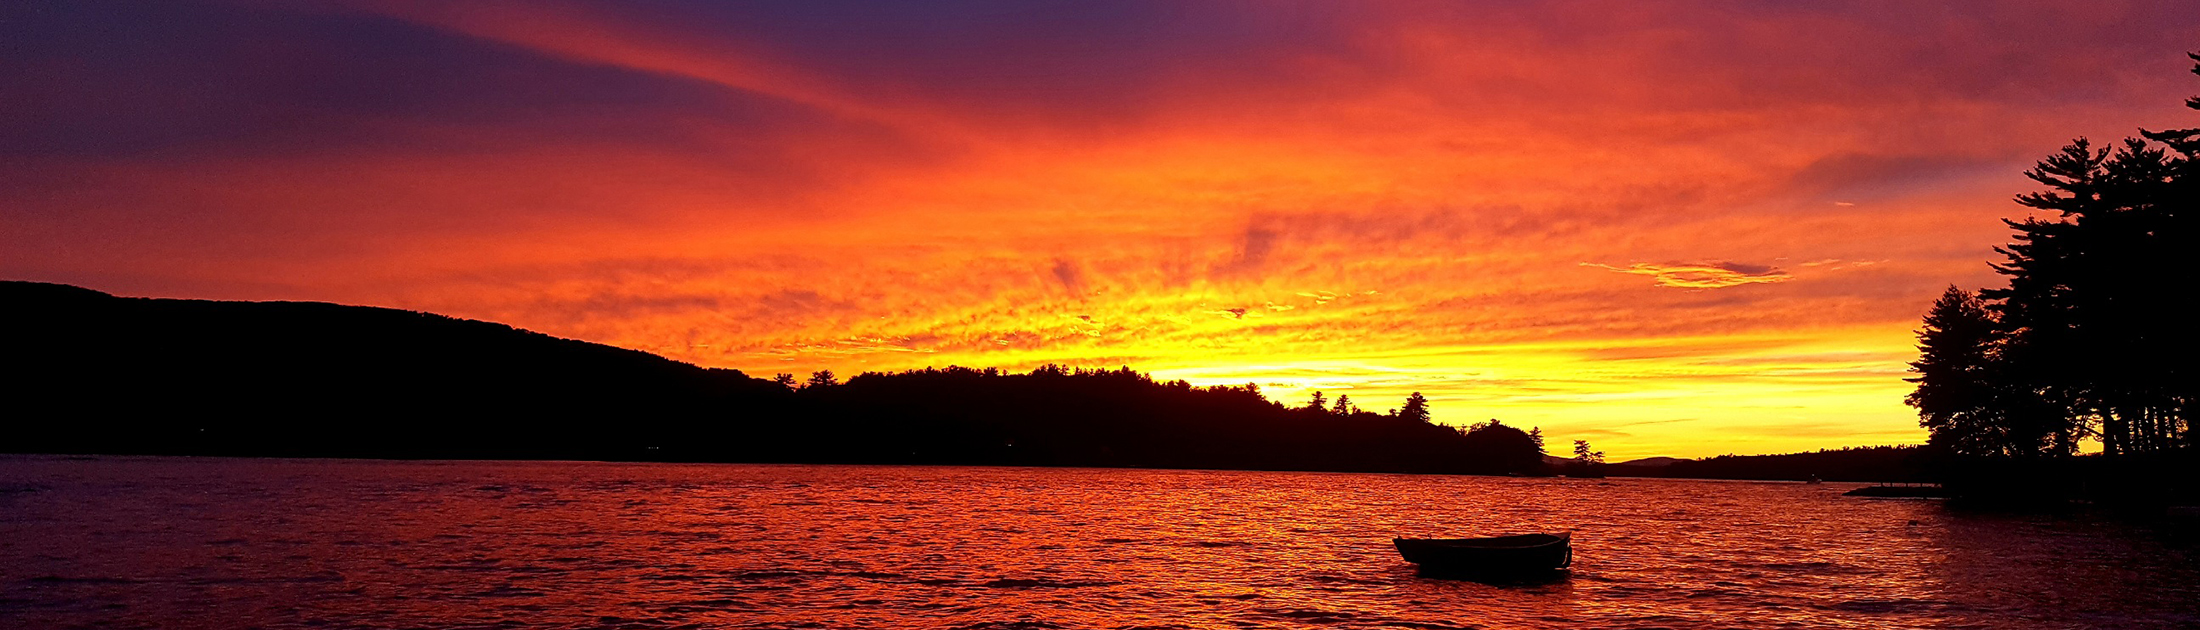 A New Hampshire lake at sunset with a boat in the foreground